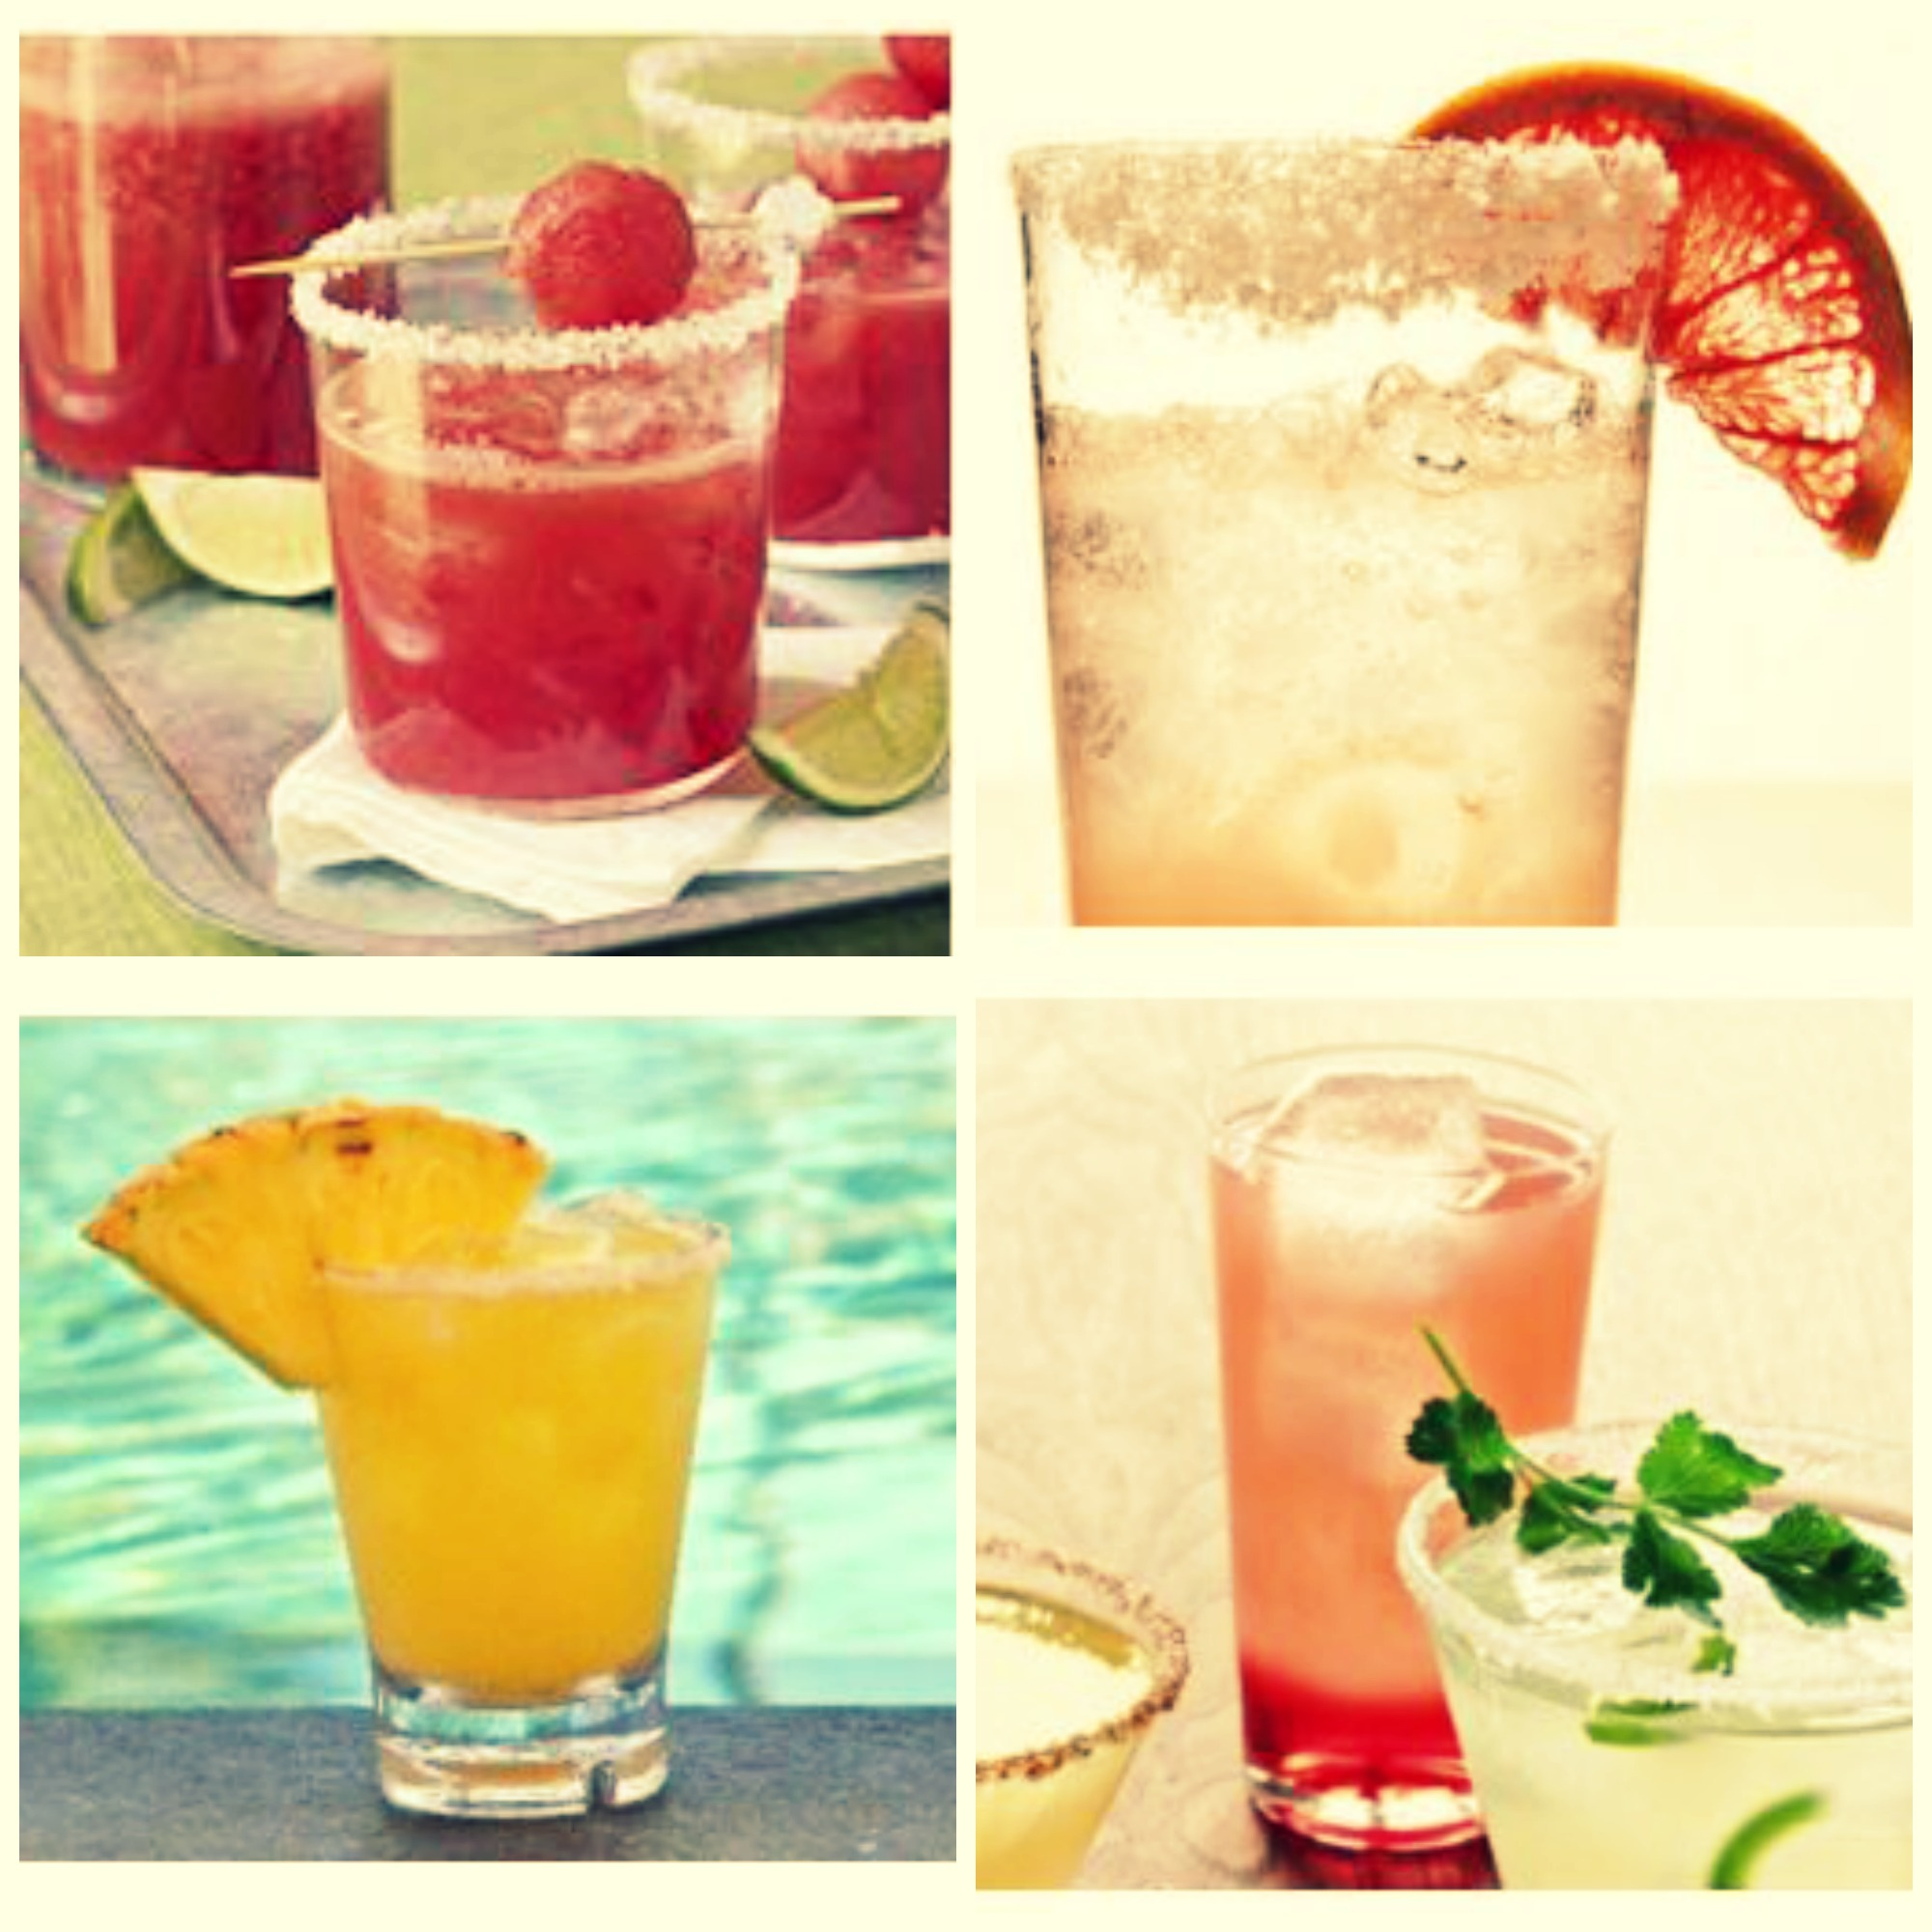 marg collage2